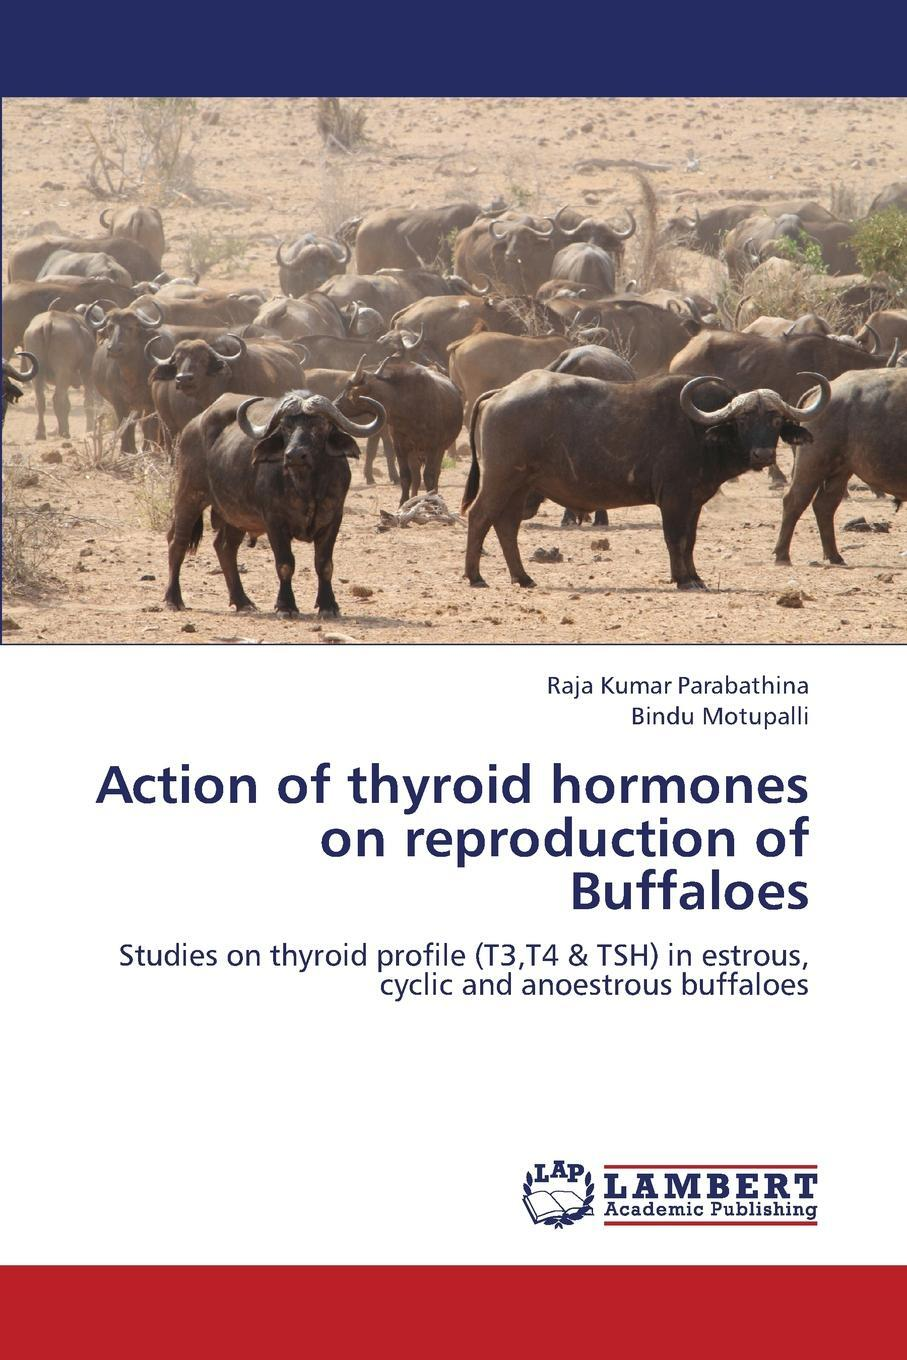 Action of Thyroid Hormones on Reproduction of Buffaloes